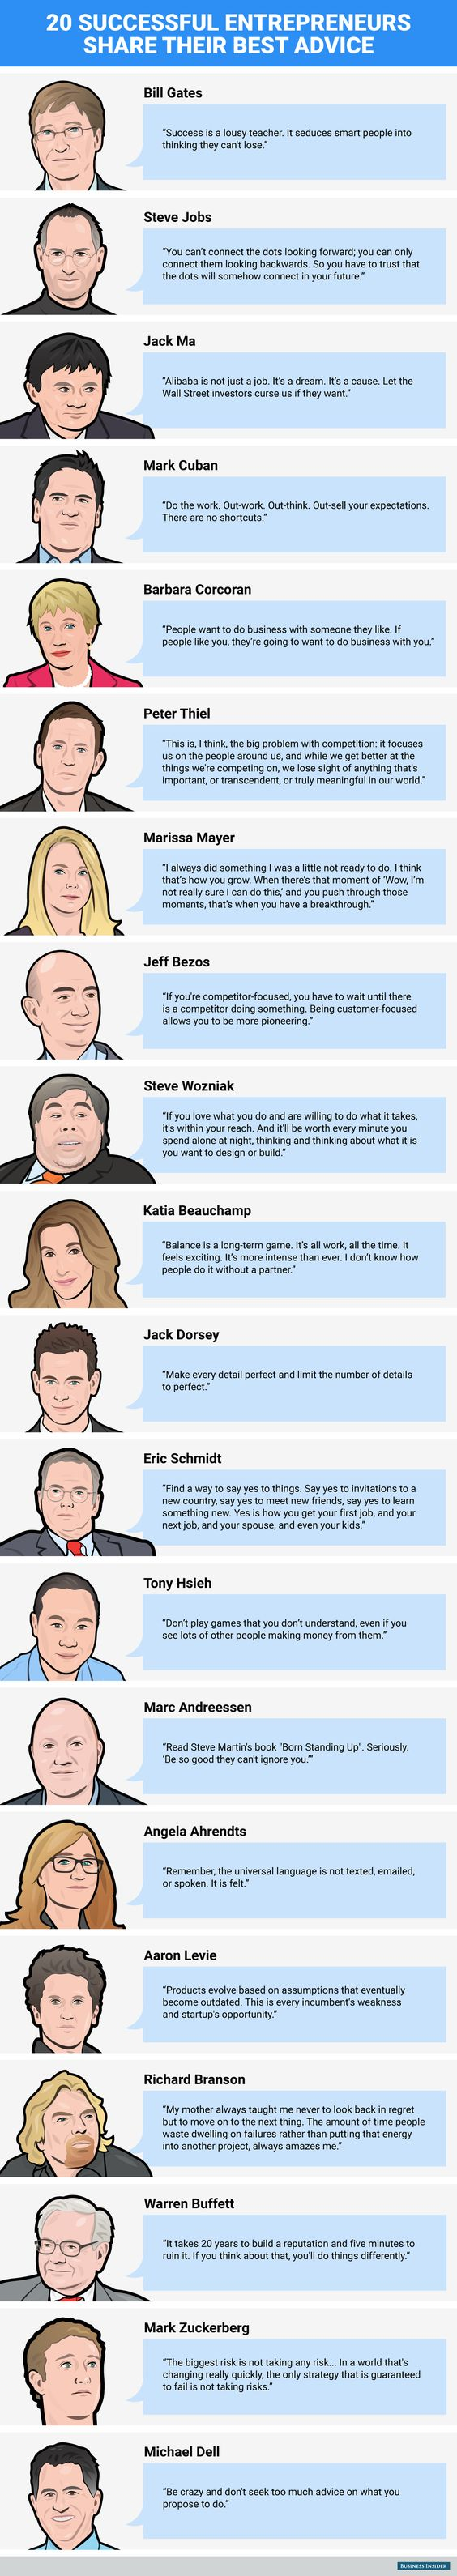 151209-influential entrepreneuers advice BI infographic